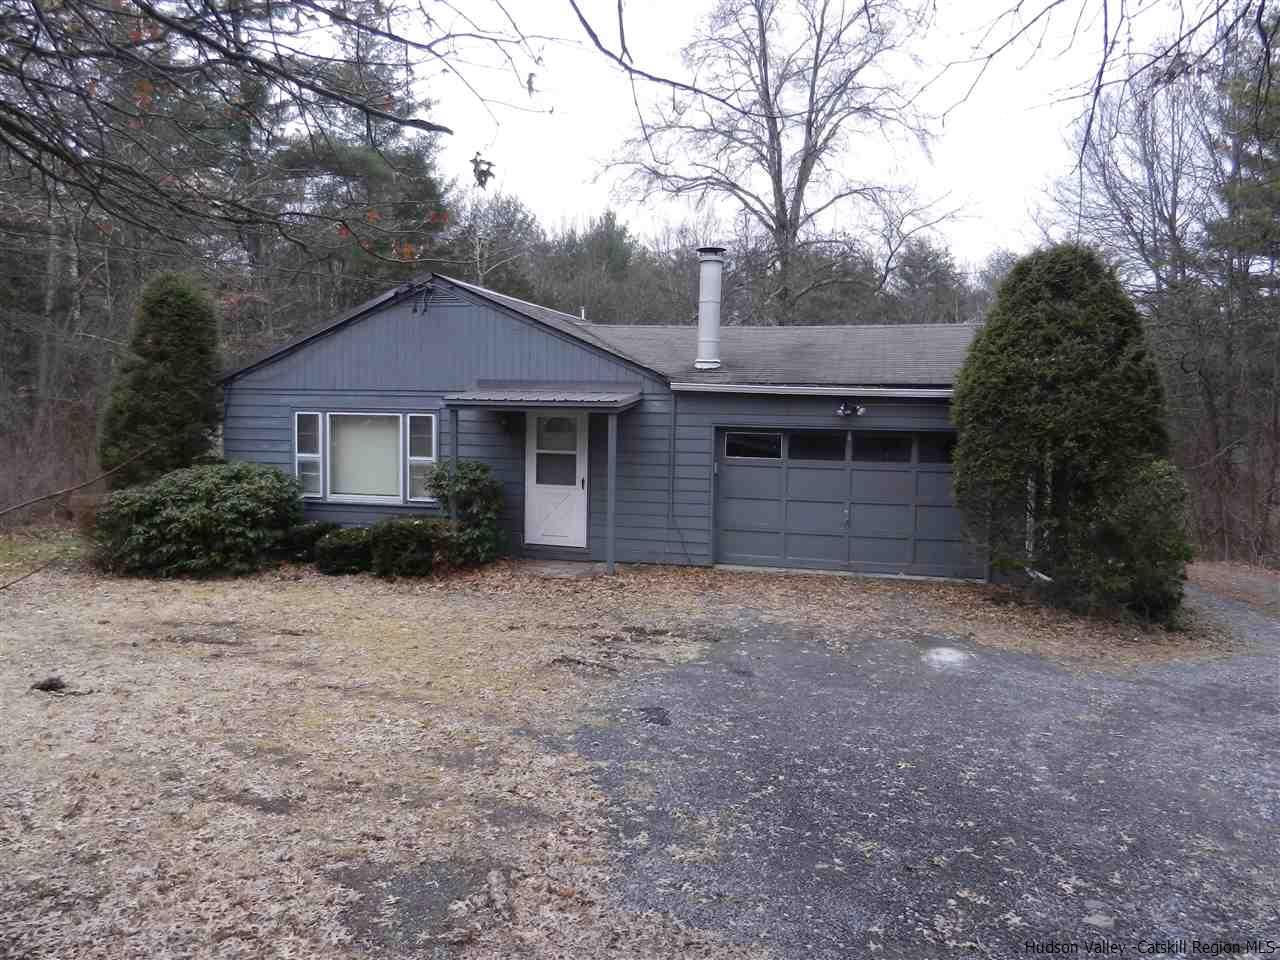 Single Family Home for Sale at 369 Route 32 North 369 Route 32 North New Paltz, New York 12561 United States